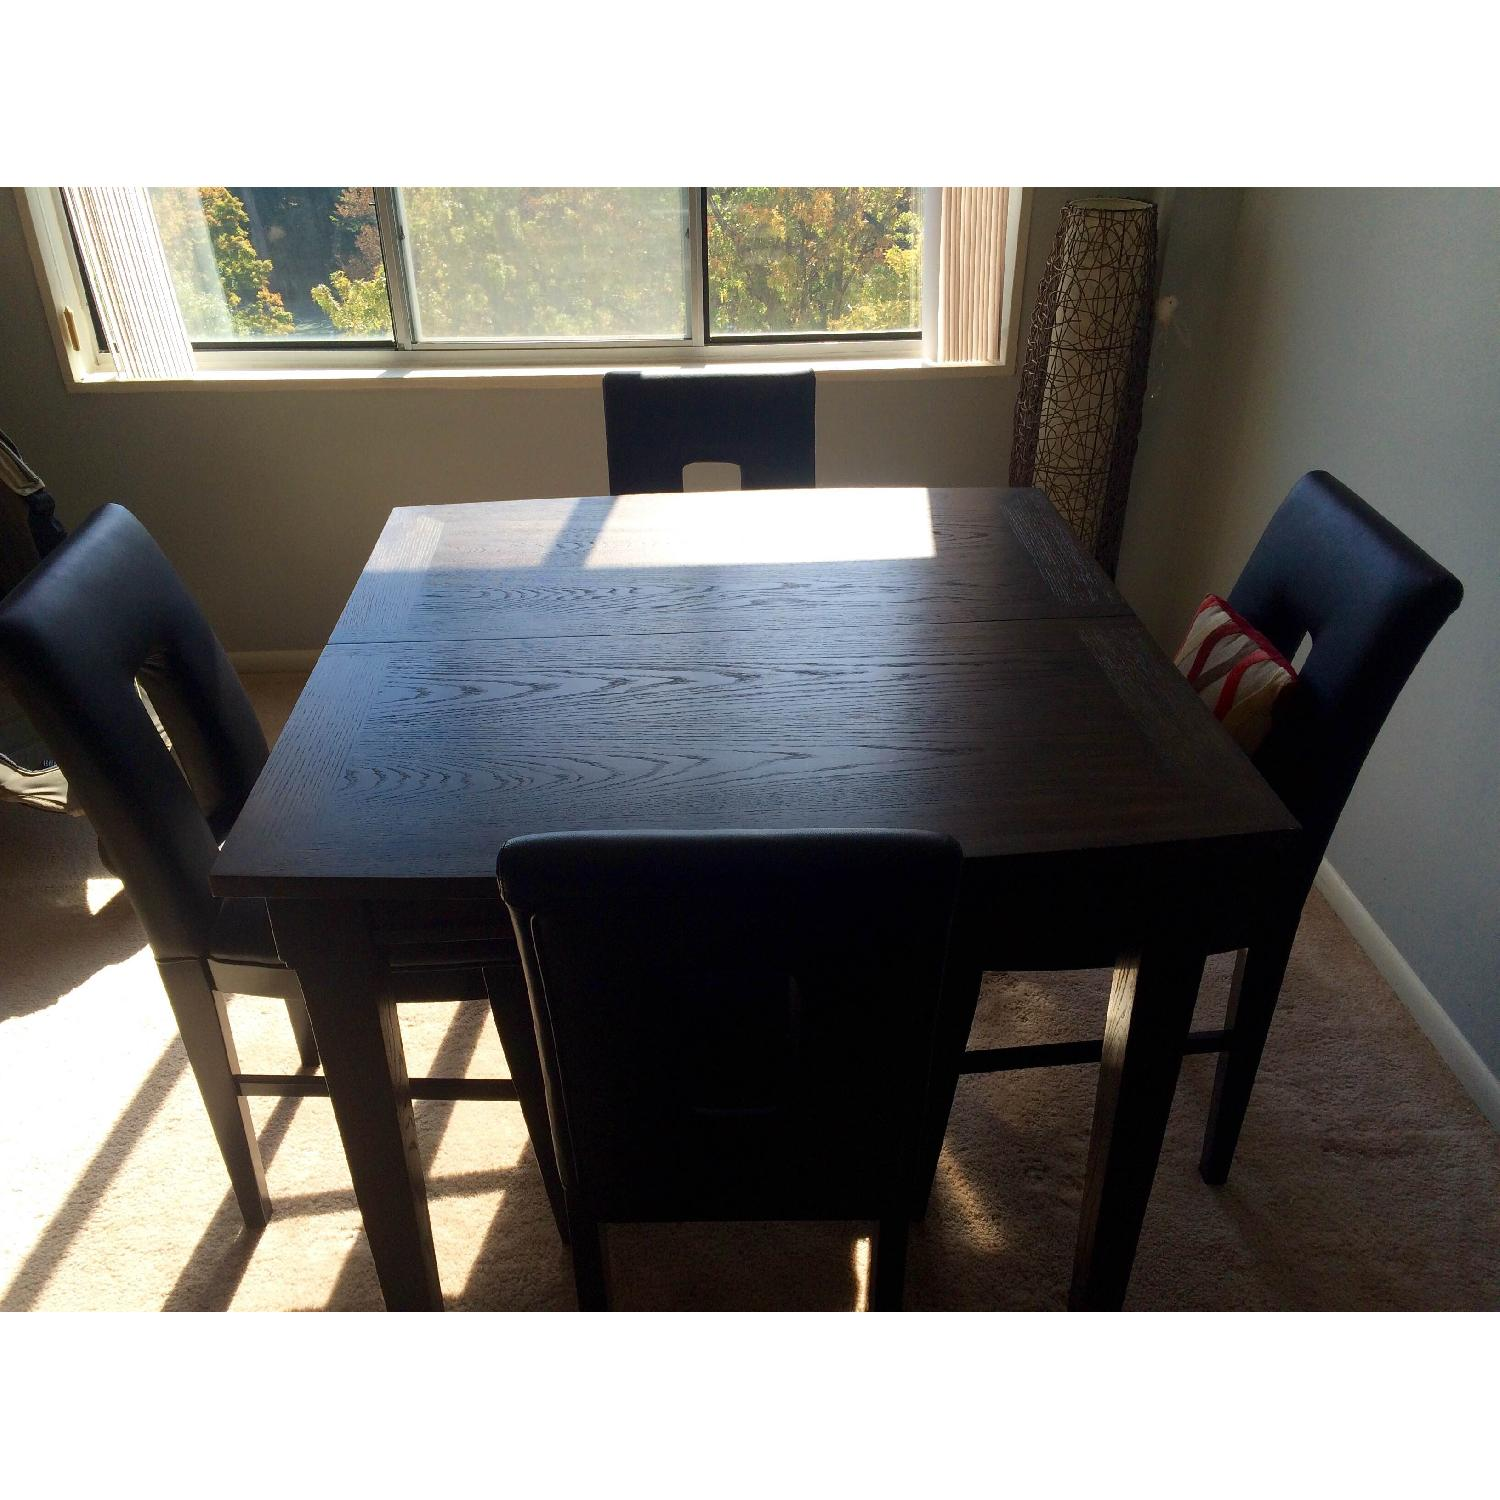 Broyhill Italian Leather Counter-Height Chairs - image-4